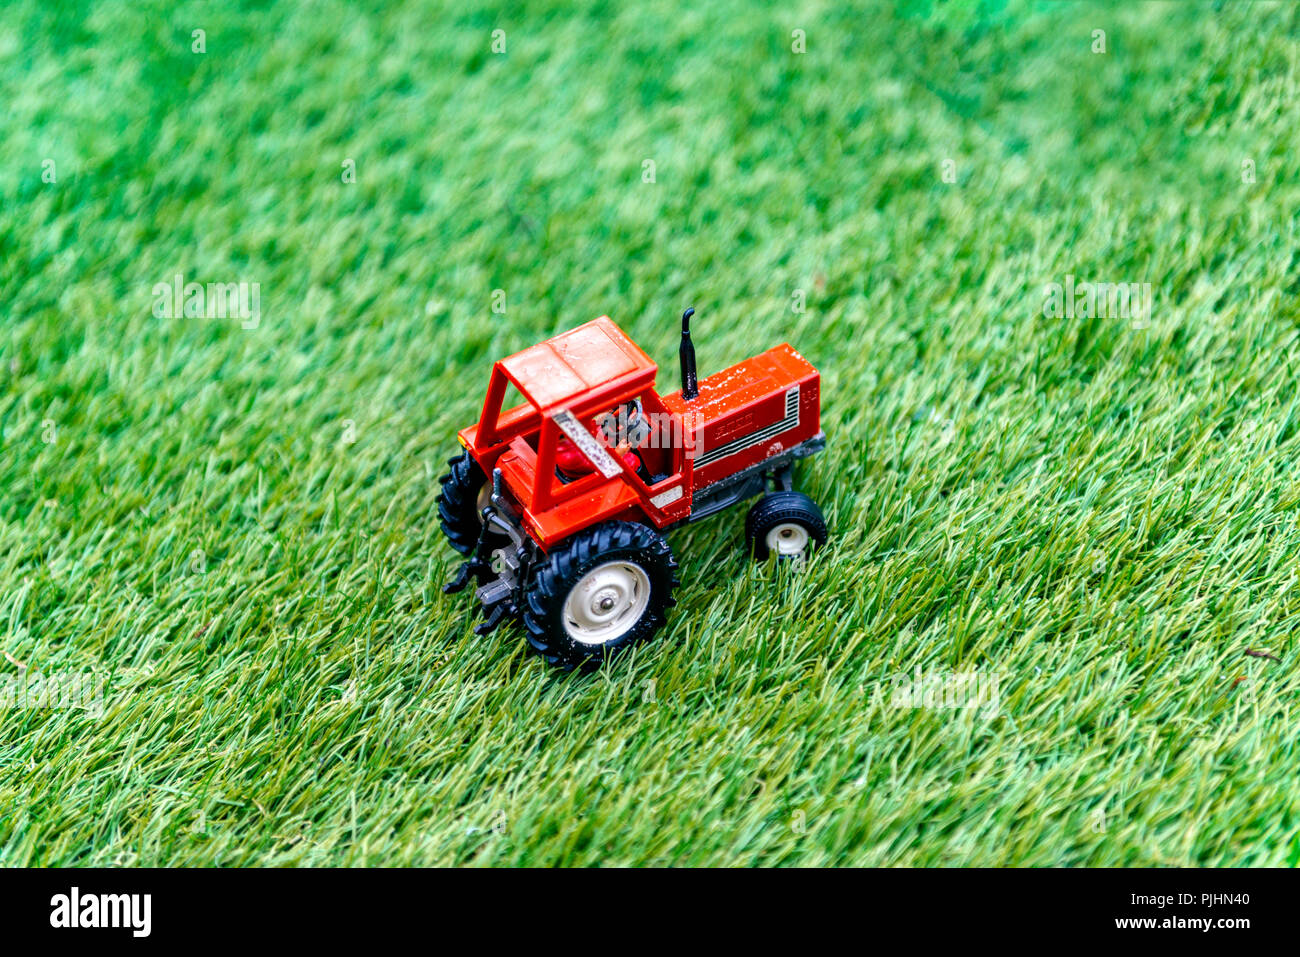 Miniature toy tractor on fake grass Stock Photo